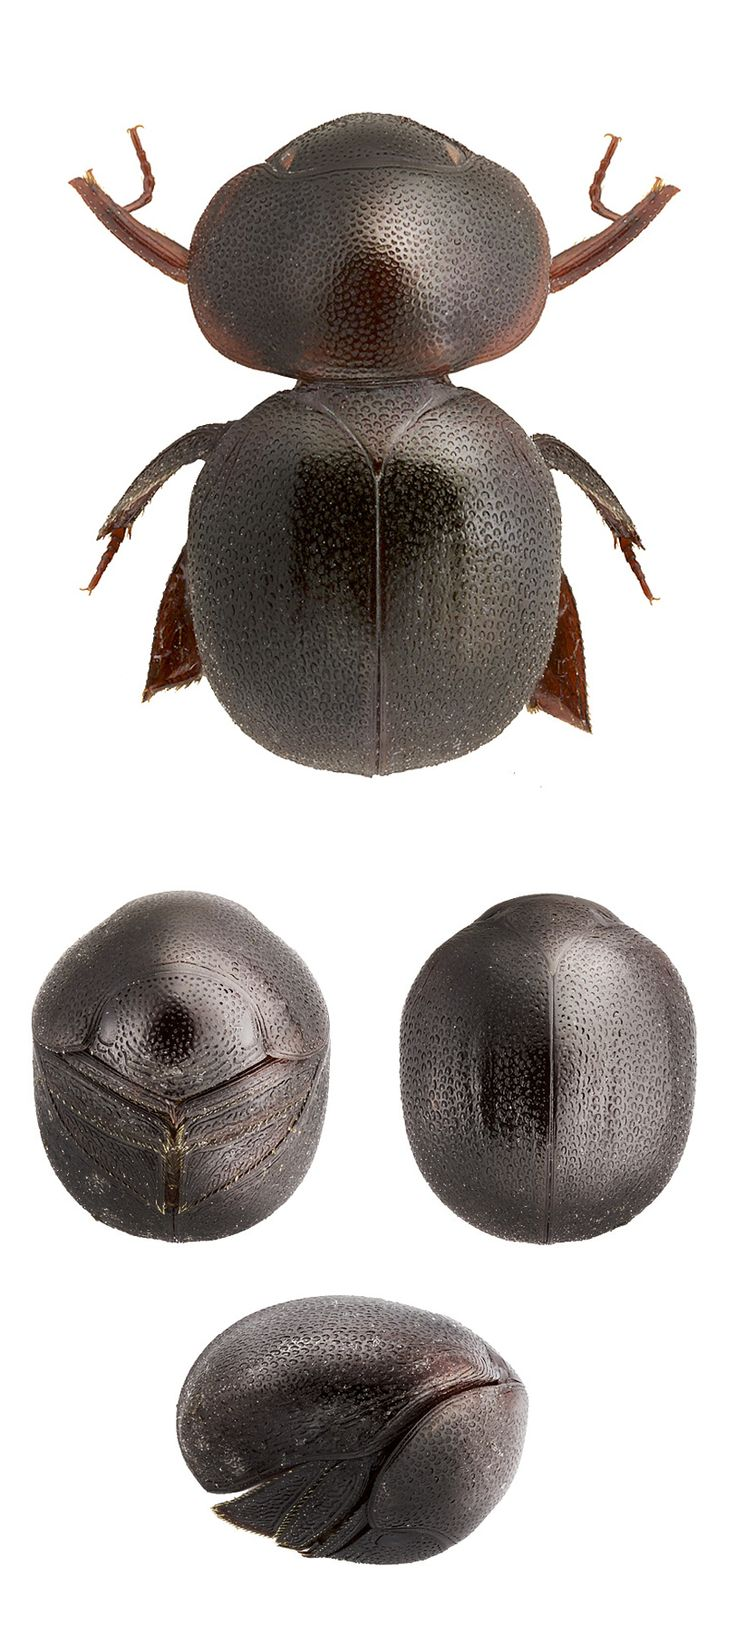 HEXAPODA - Classe Insecta (Cyphopisthes monteithi)